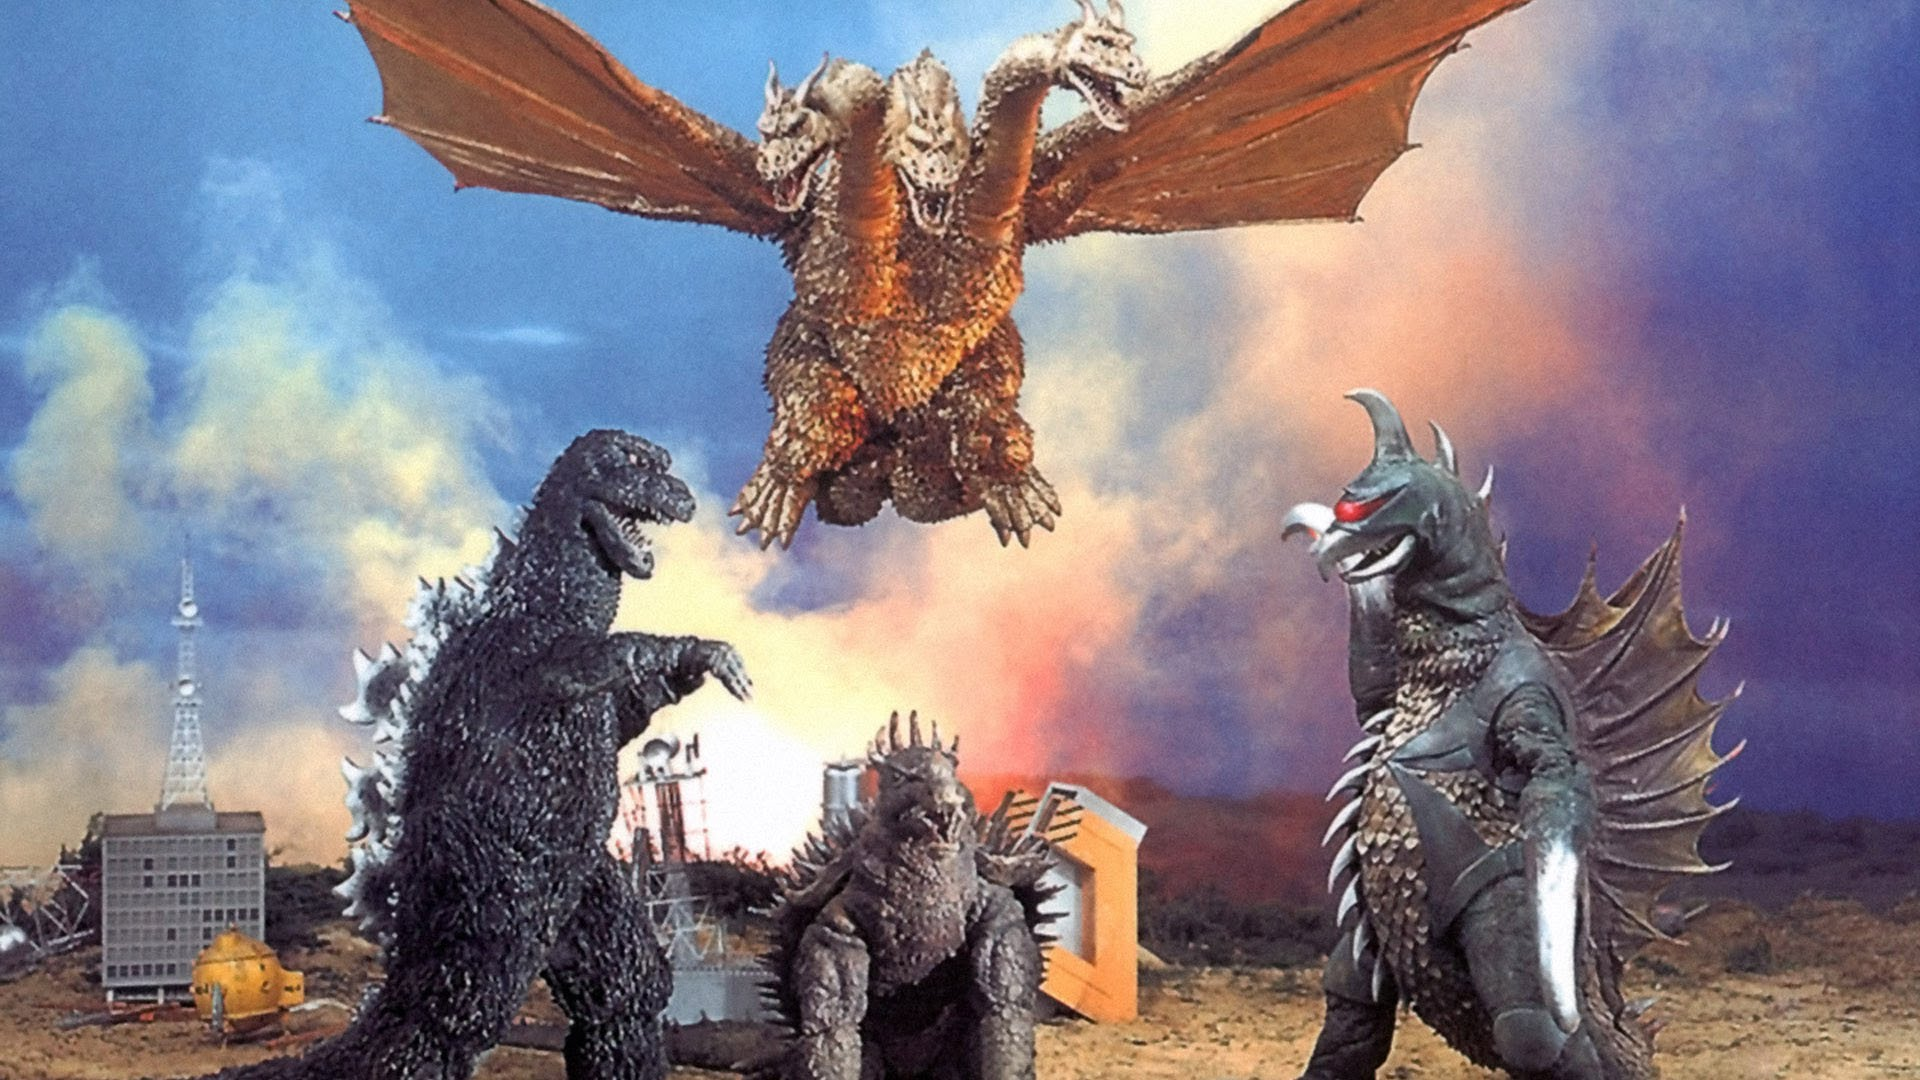 TokuNet Film Club: Godzilla vs Gigan